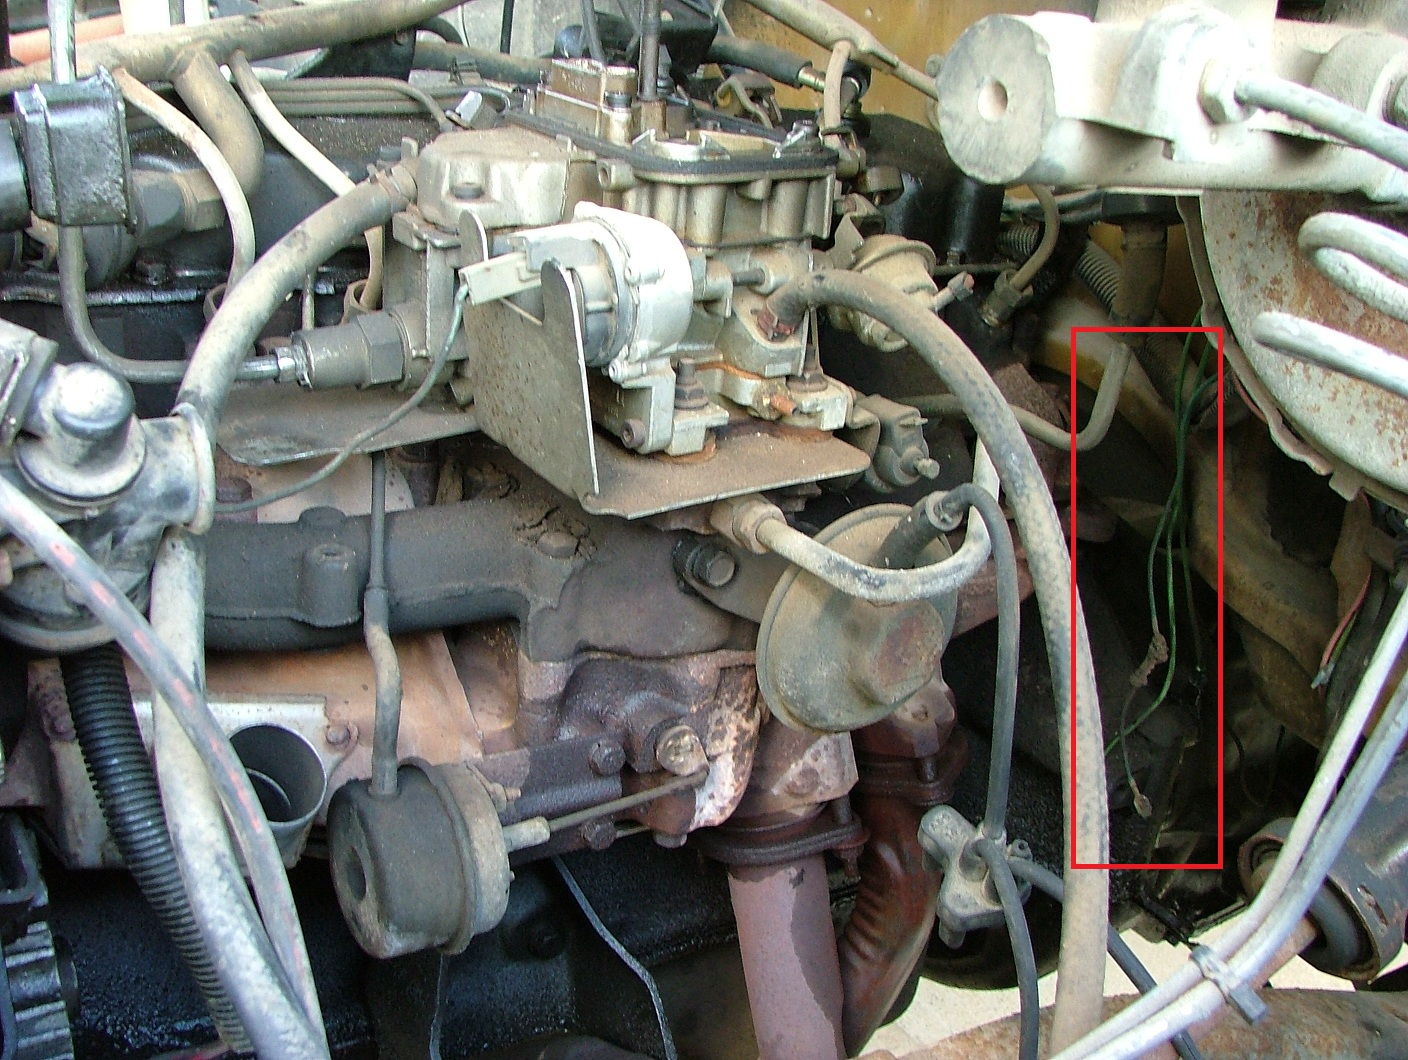 1986 Chevy K10 A C Compressor Wiring Diagram 44 C10 Ac Mystery Wire Need Help With Gm Square Body 1973 1987 Chevrolet